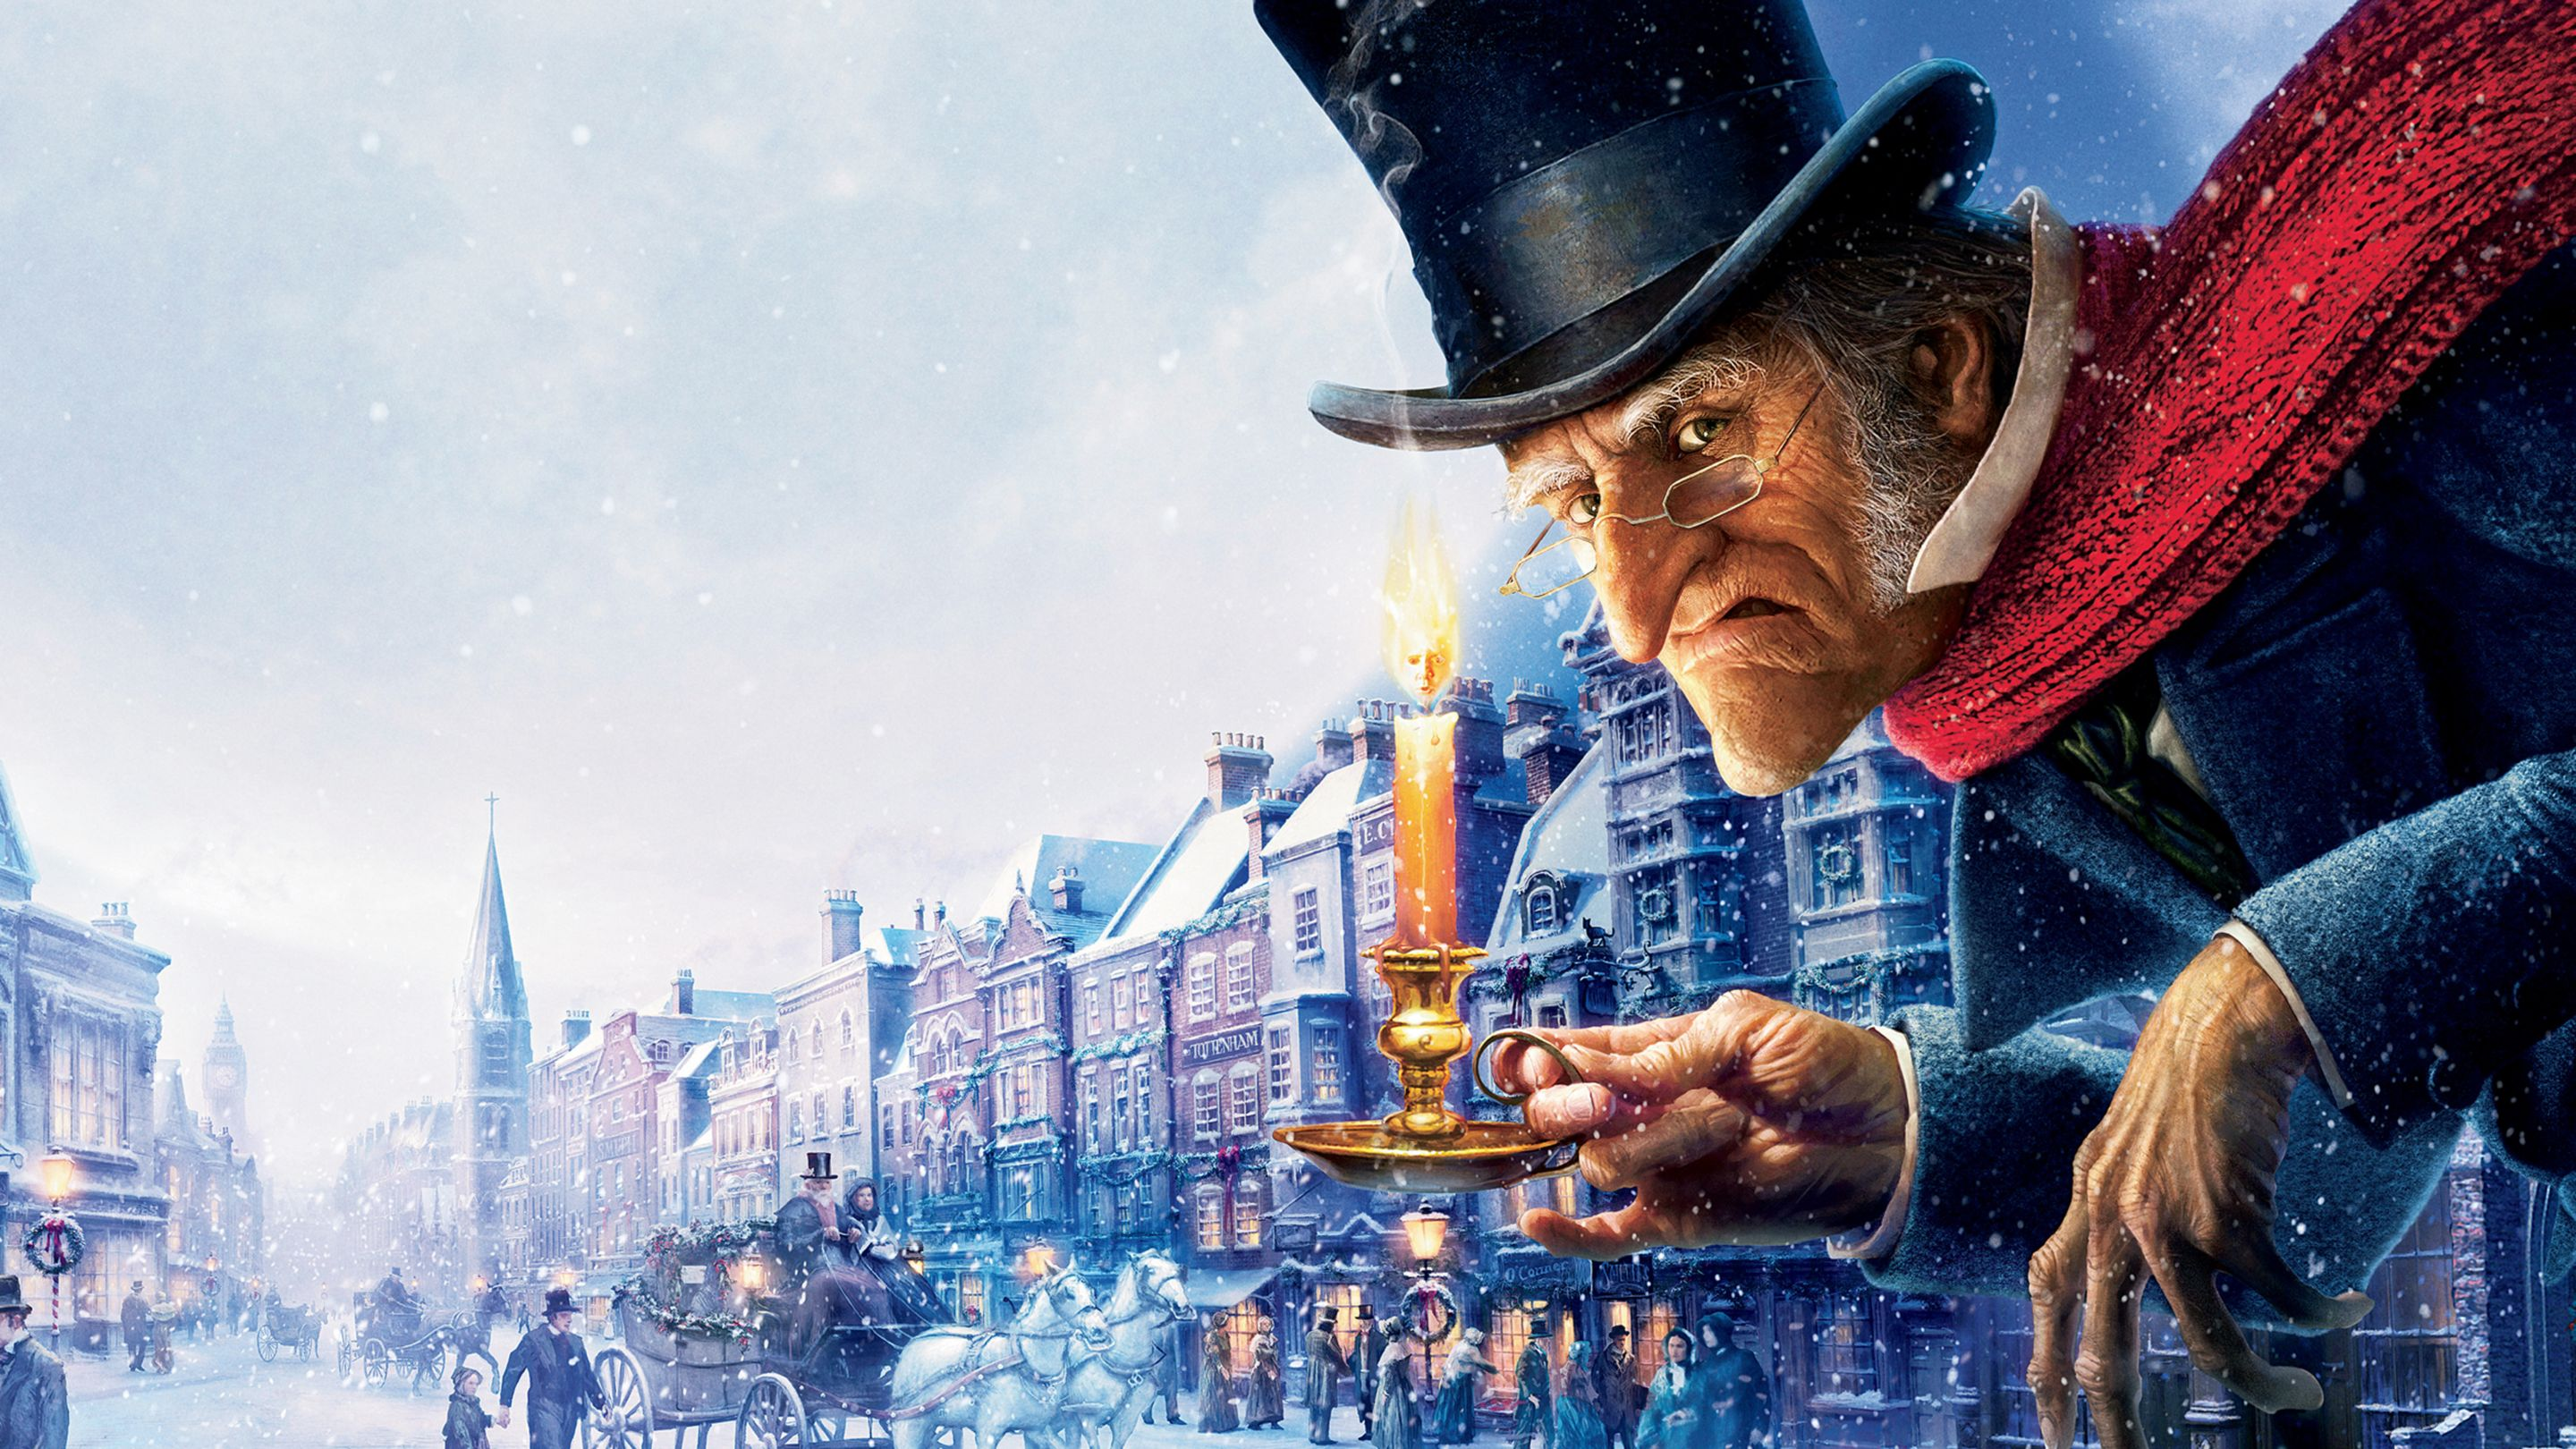 Watch Disney's A Christmas Carol | Full movie | Disney+